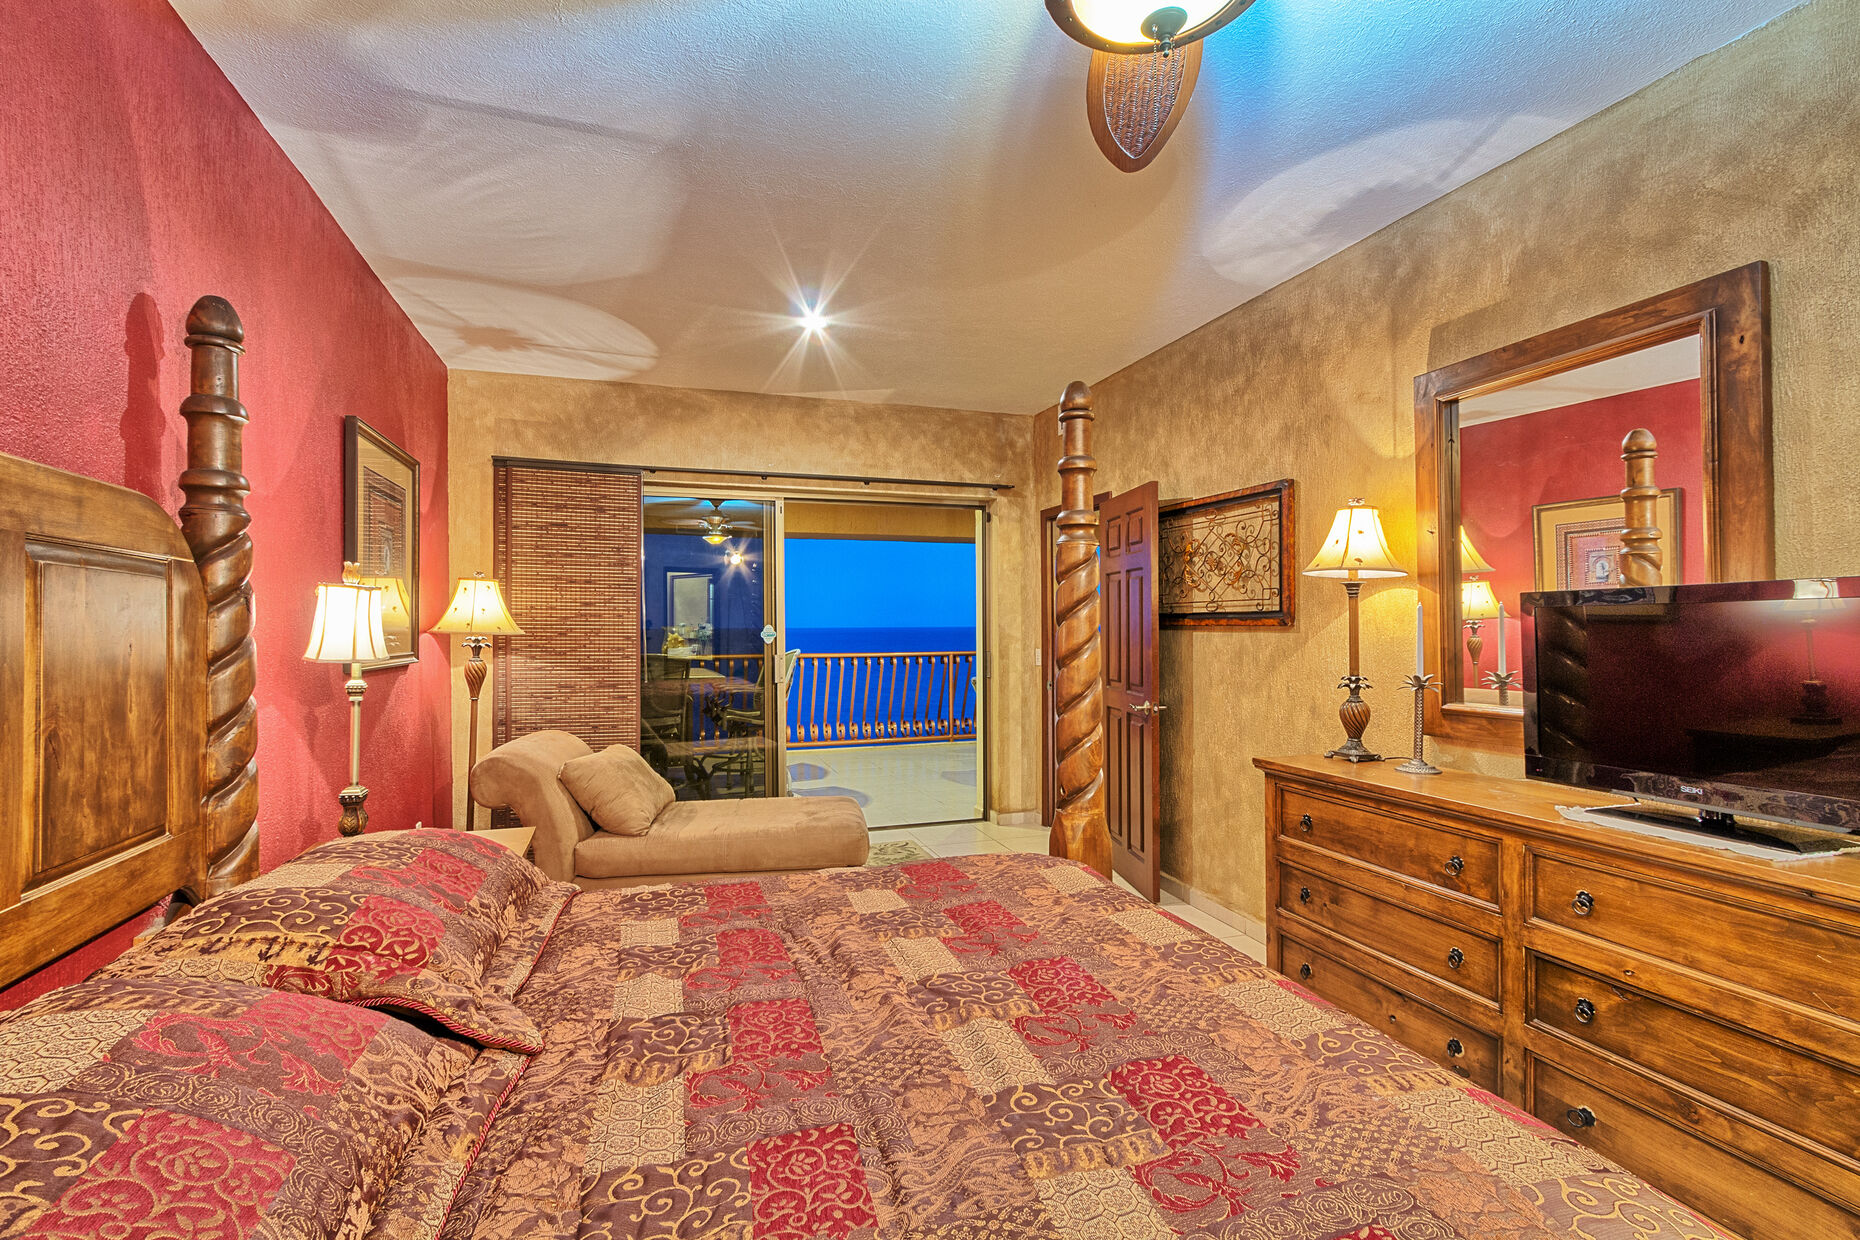 Master bedroom with view of the sea and entrance to patio